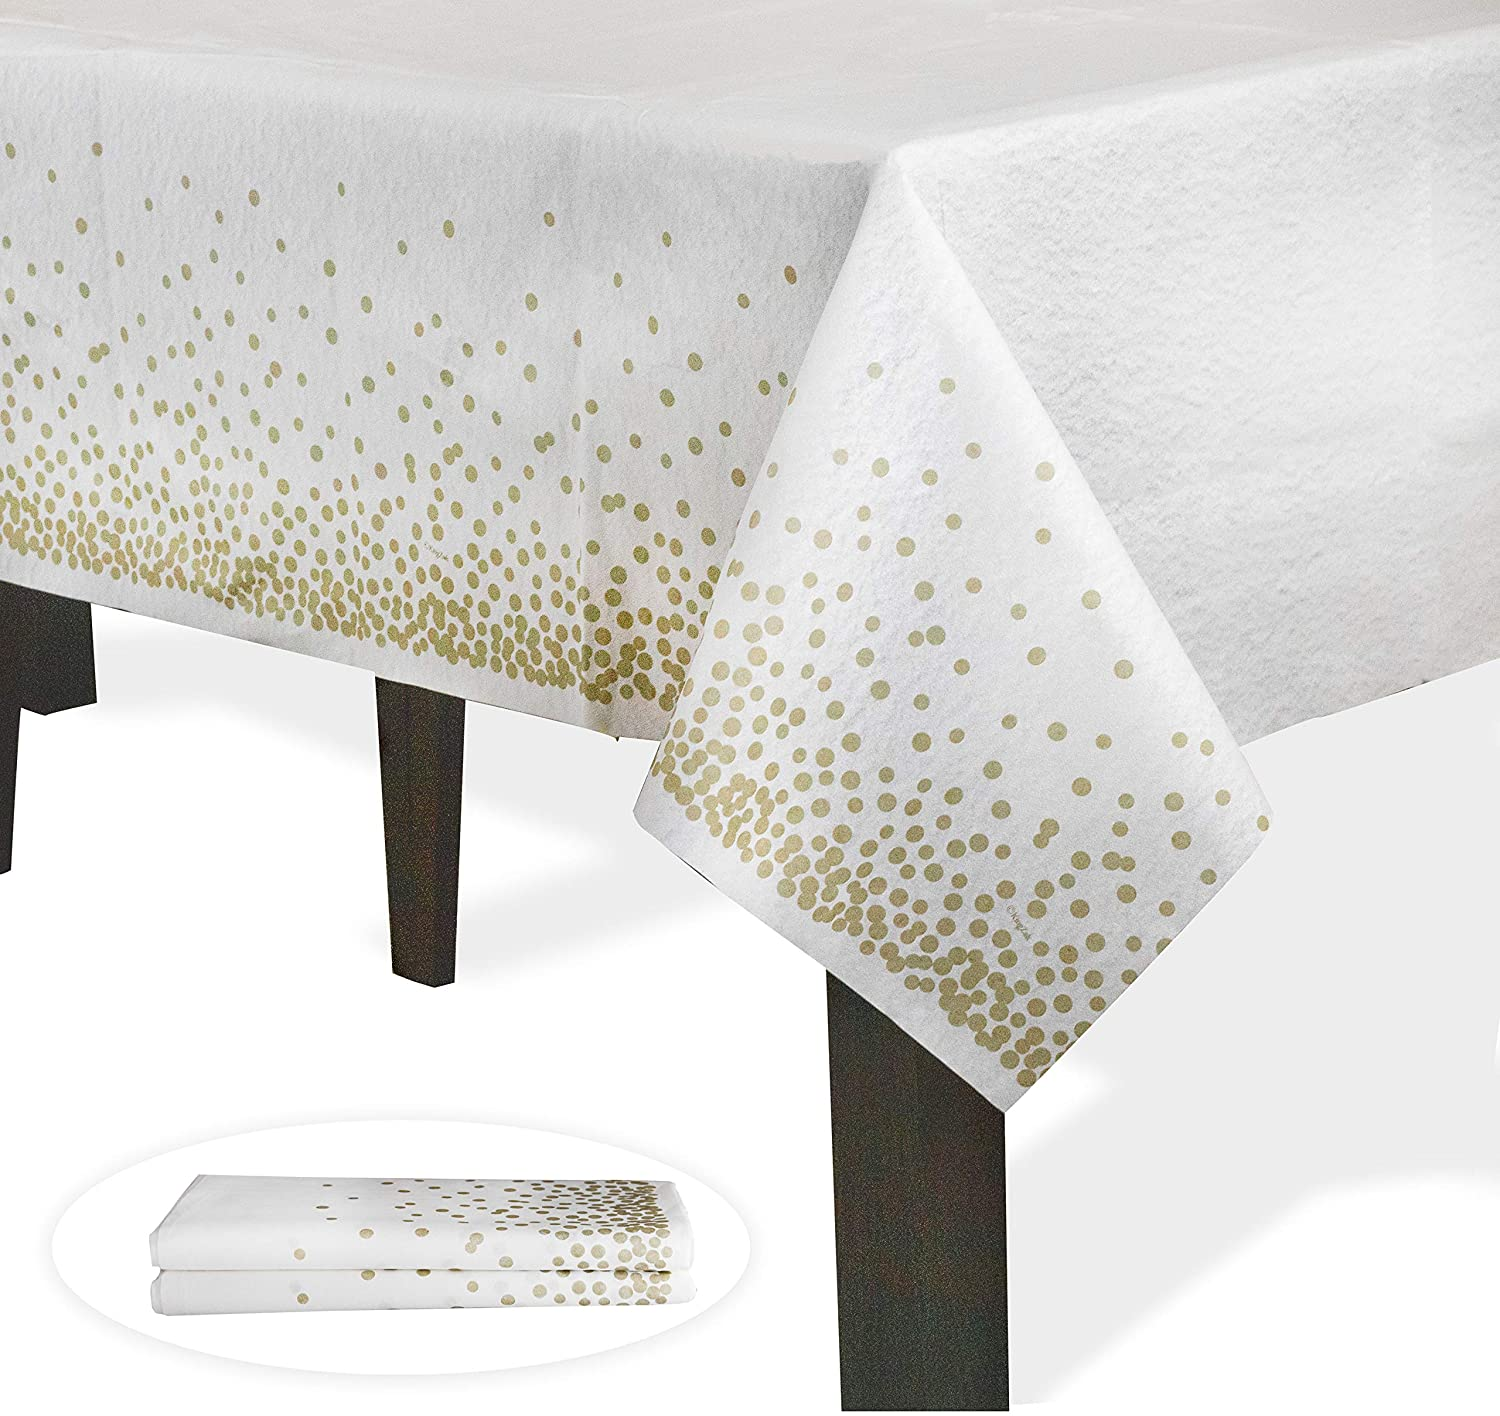 """Upper Midland Products White and Gold Paper Tablecloths for Parties, Weddings, Christmas, Thanksgiving, Graduation, Gender Reveal, Baby Shower- Cloth-Like Confetti Dots Table Cloth 54""""x102"""", 2 Pack"""